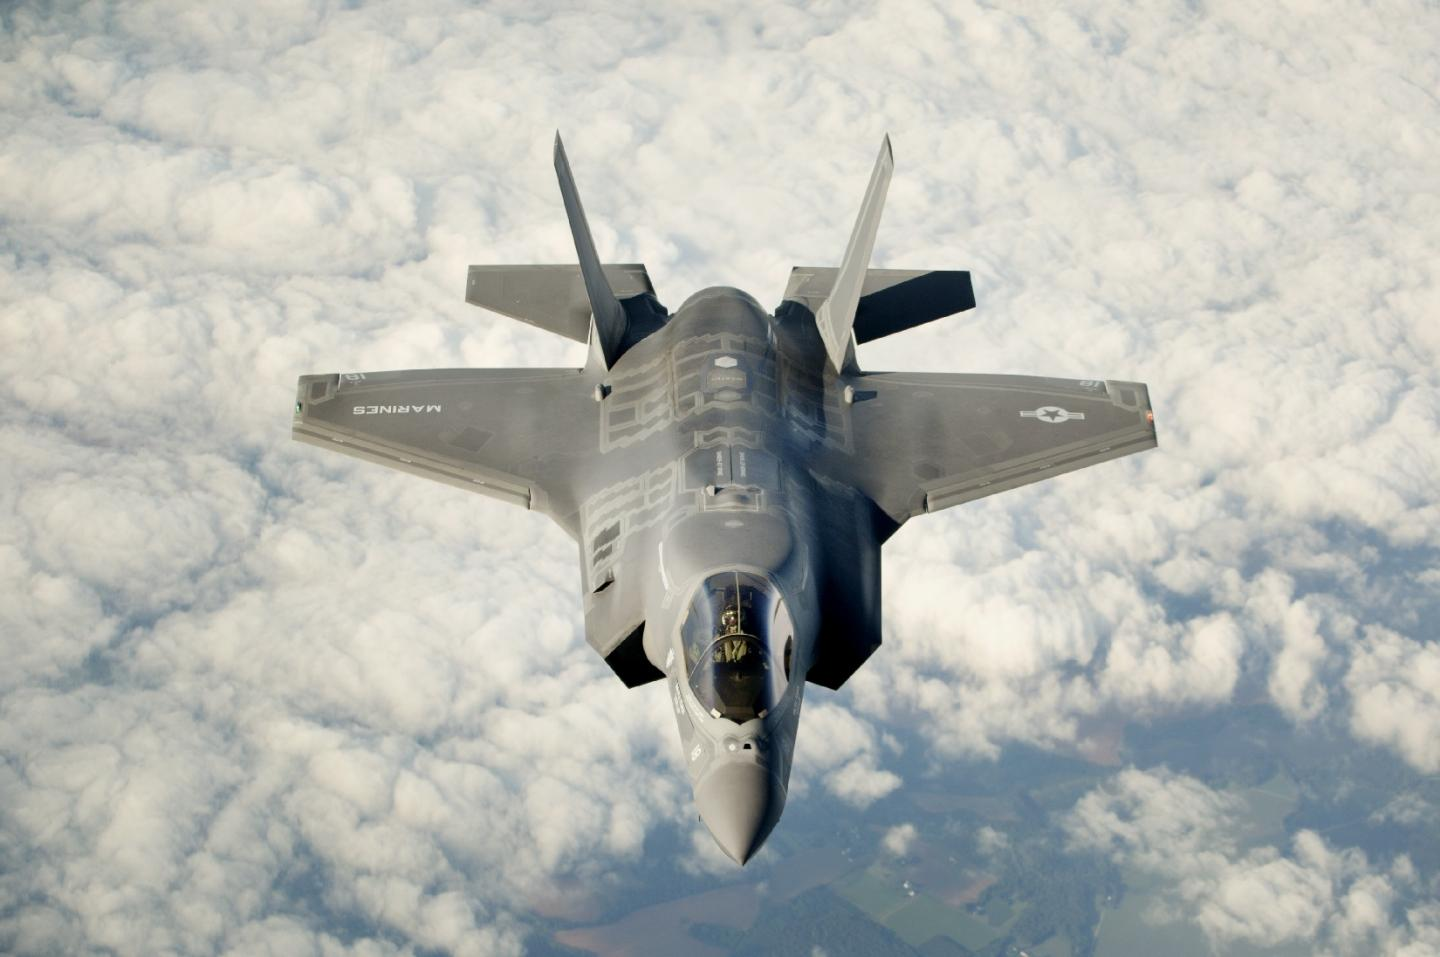 Israeli Air Forces F-35 Stealth Fighter Went Into Irans Airspace: Report